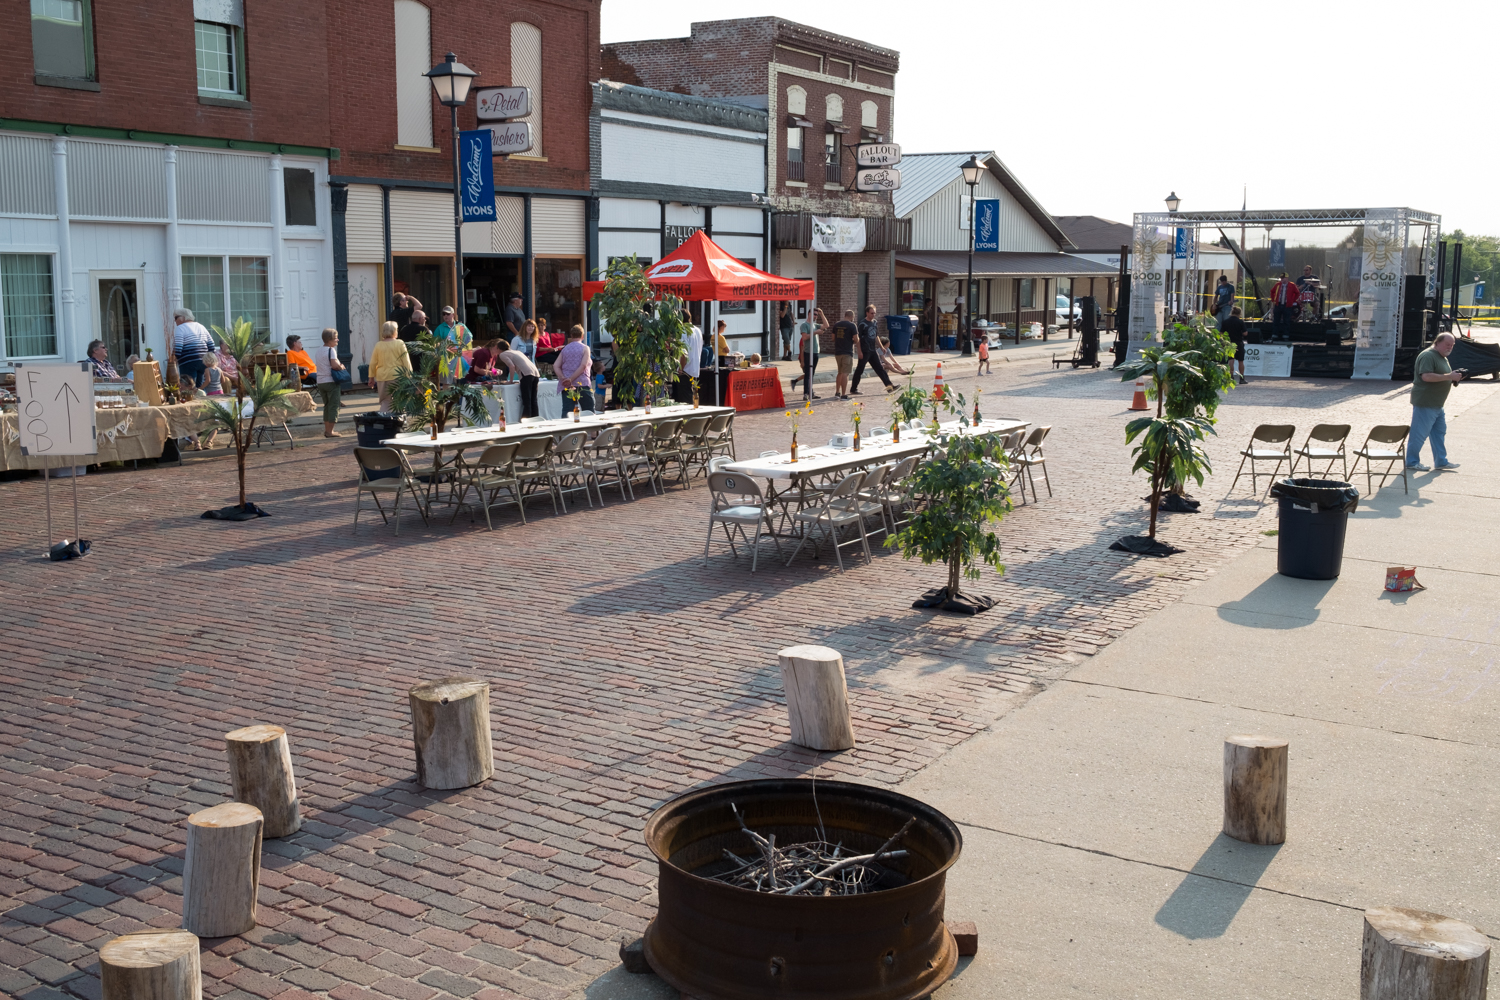 The Main Street design included a campfire setting with logs for additional seating options.